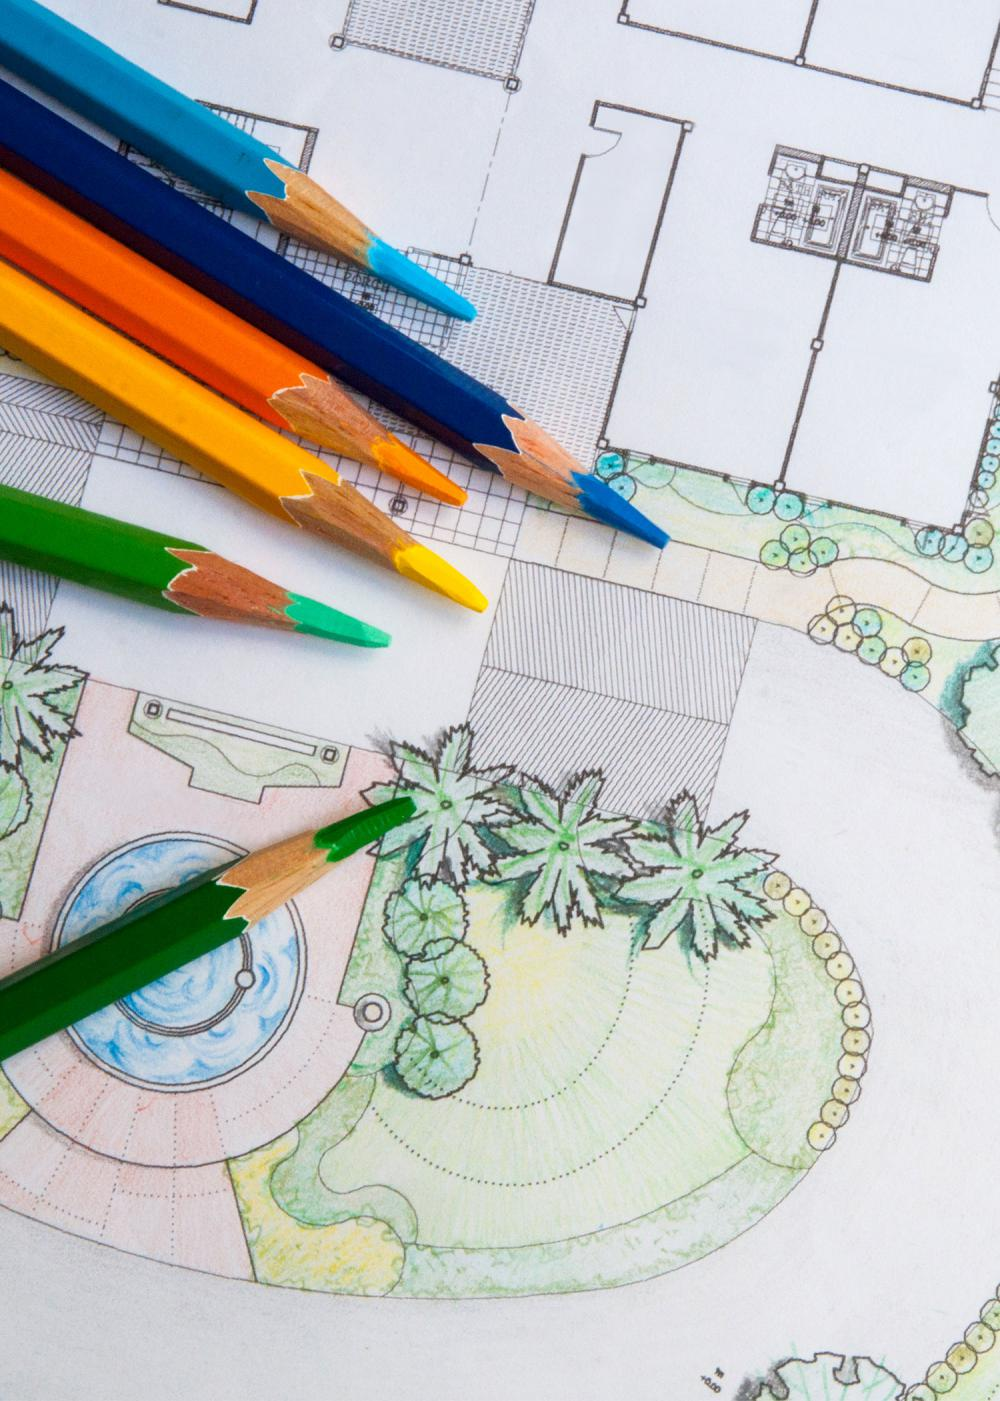 Practical Garden Design | Course | Best in Horticulture